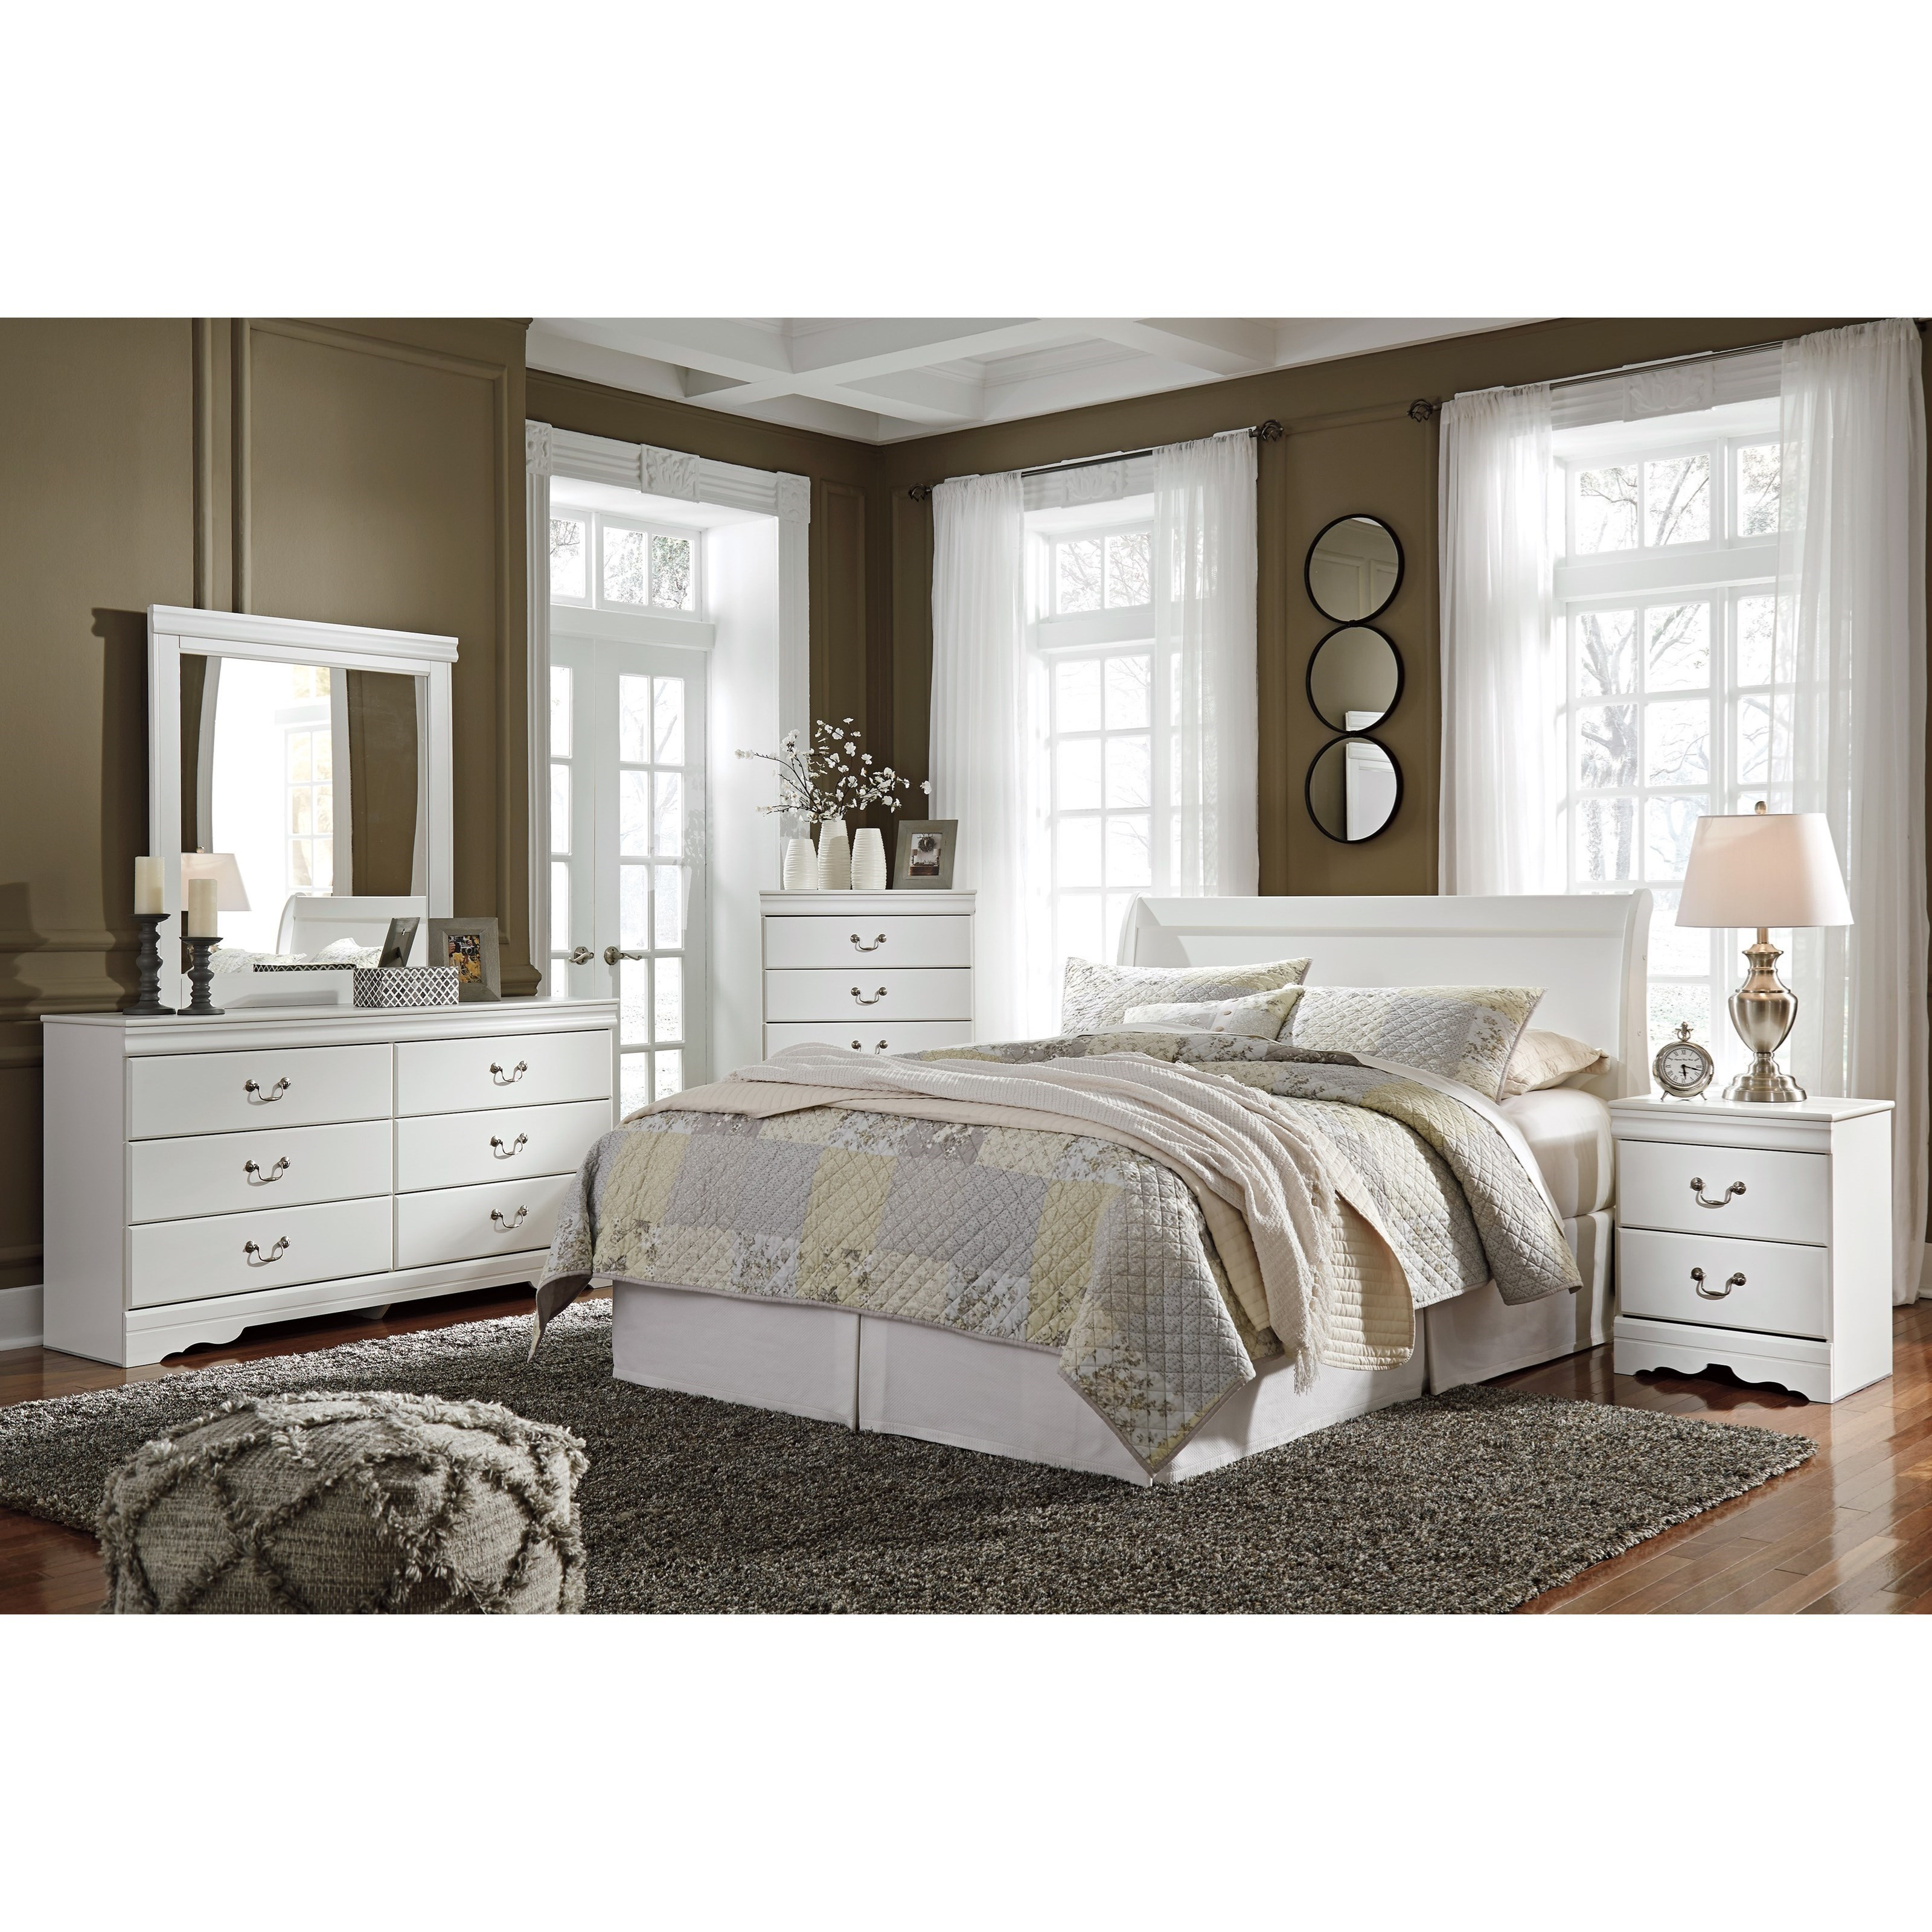 Anarasia Queen Bedroom Group by Signature Design by Ashley at Nassau Furniture and Mattress